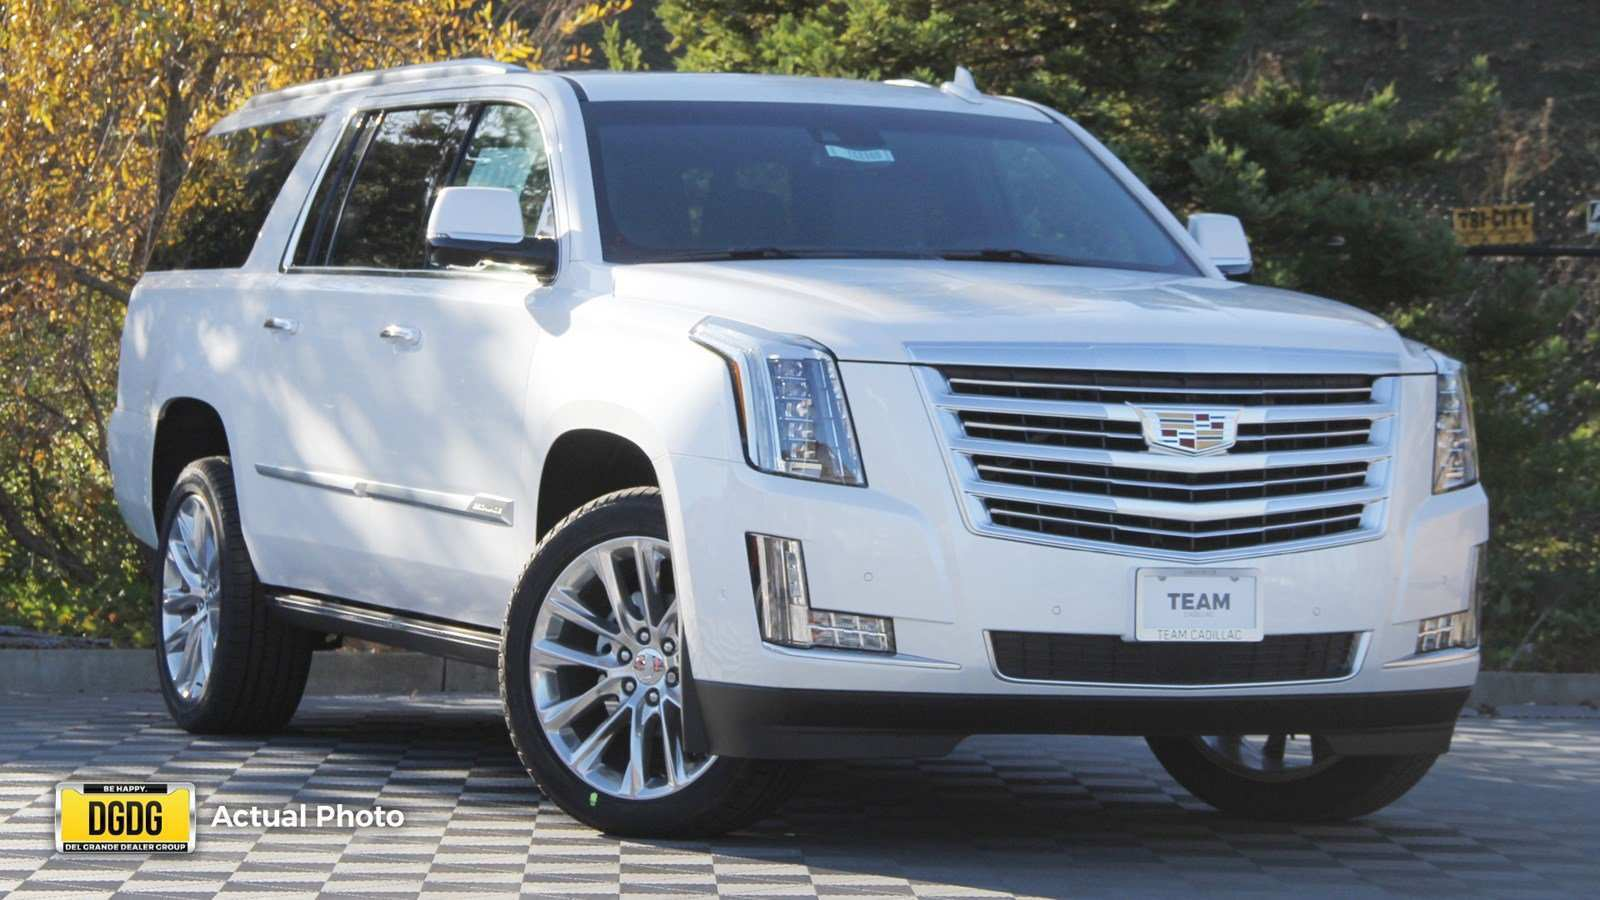 38 New The Cadillac Escalade 2019 Platinum Exterior Style by The Cadillac Escalade 2019 Platinum Exterior